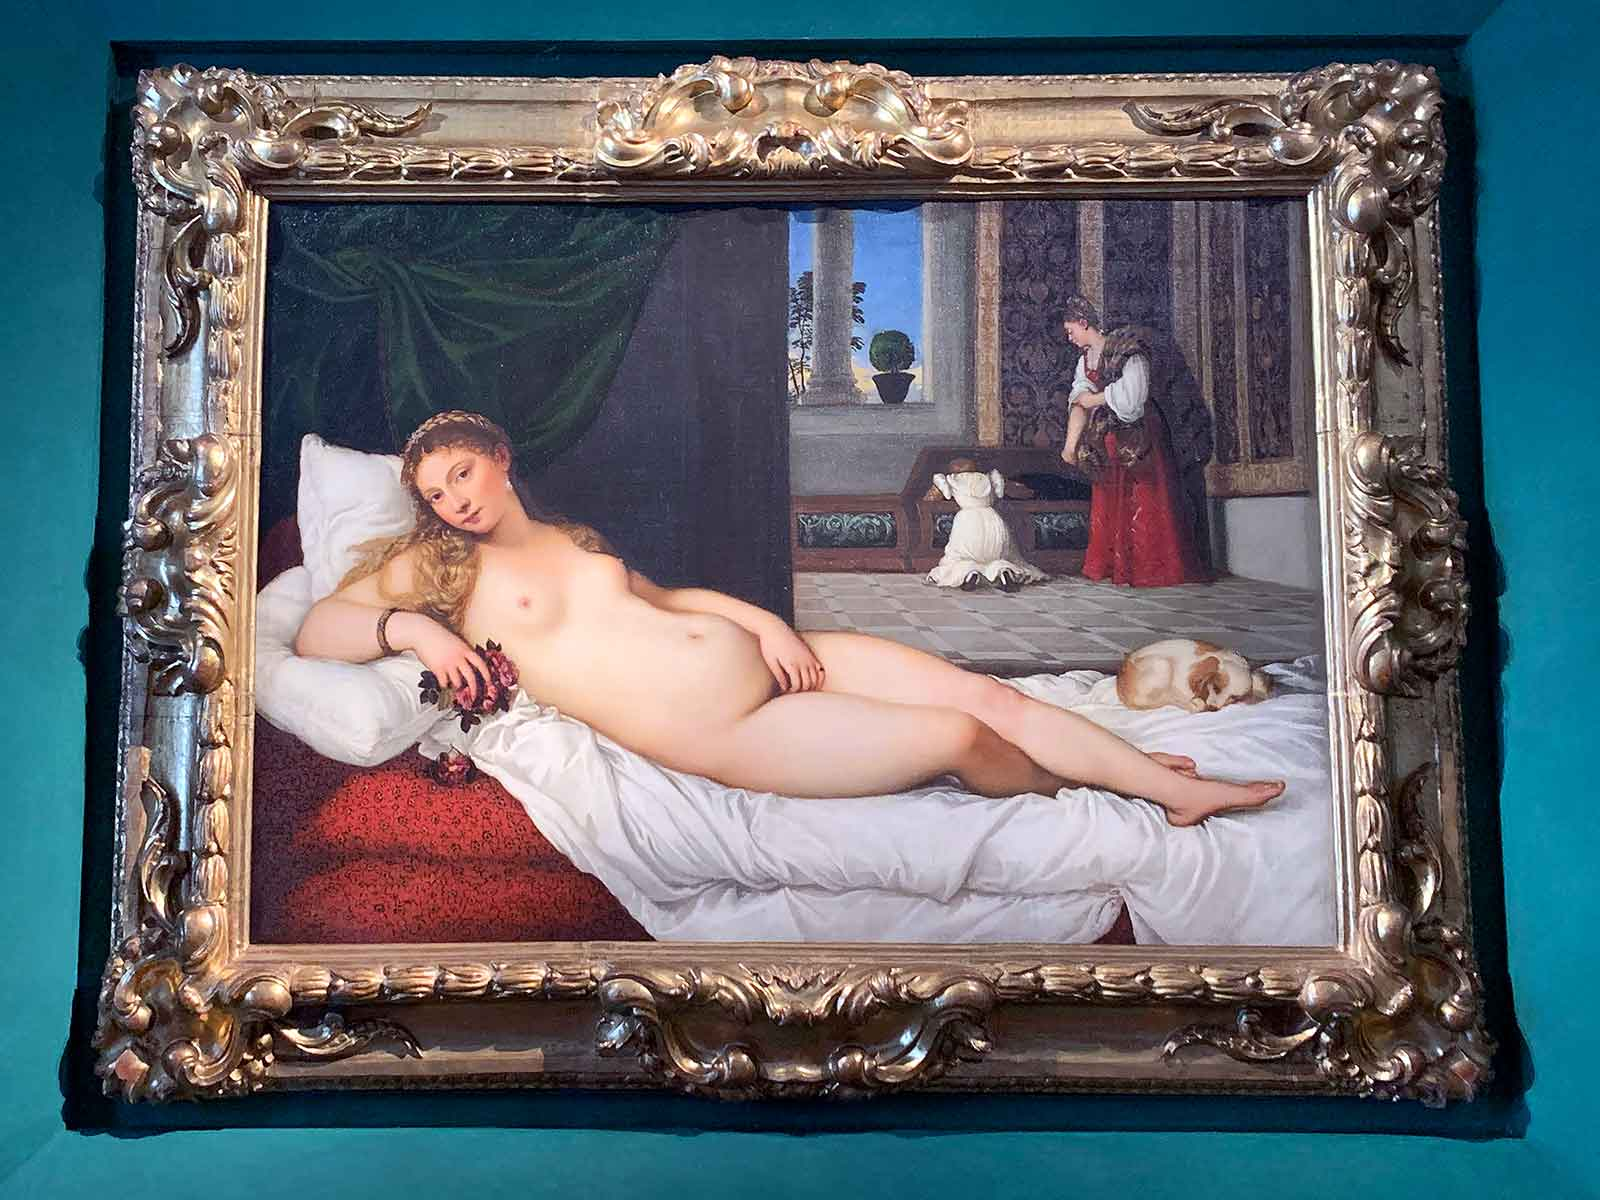 Venus of Urbino painting by Titian in the Uffizi